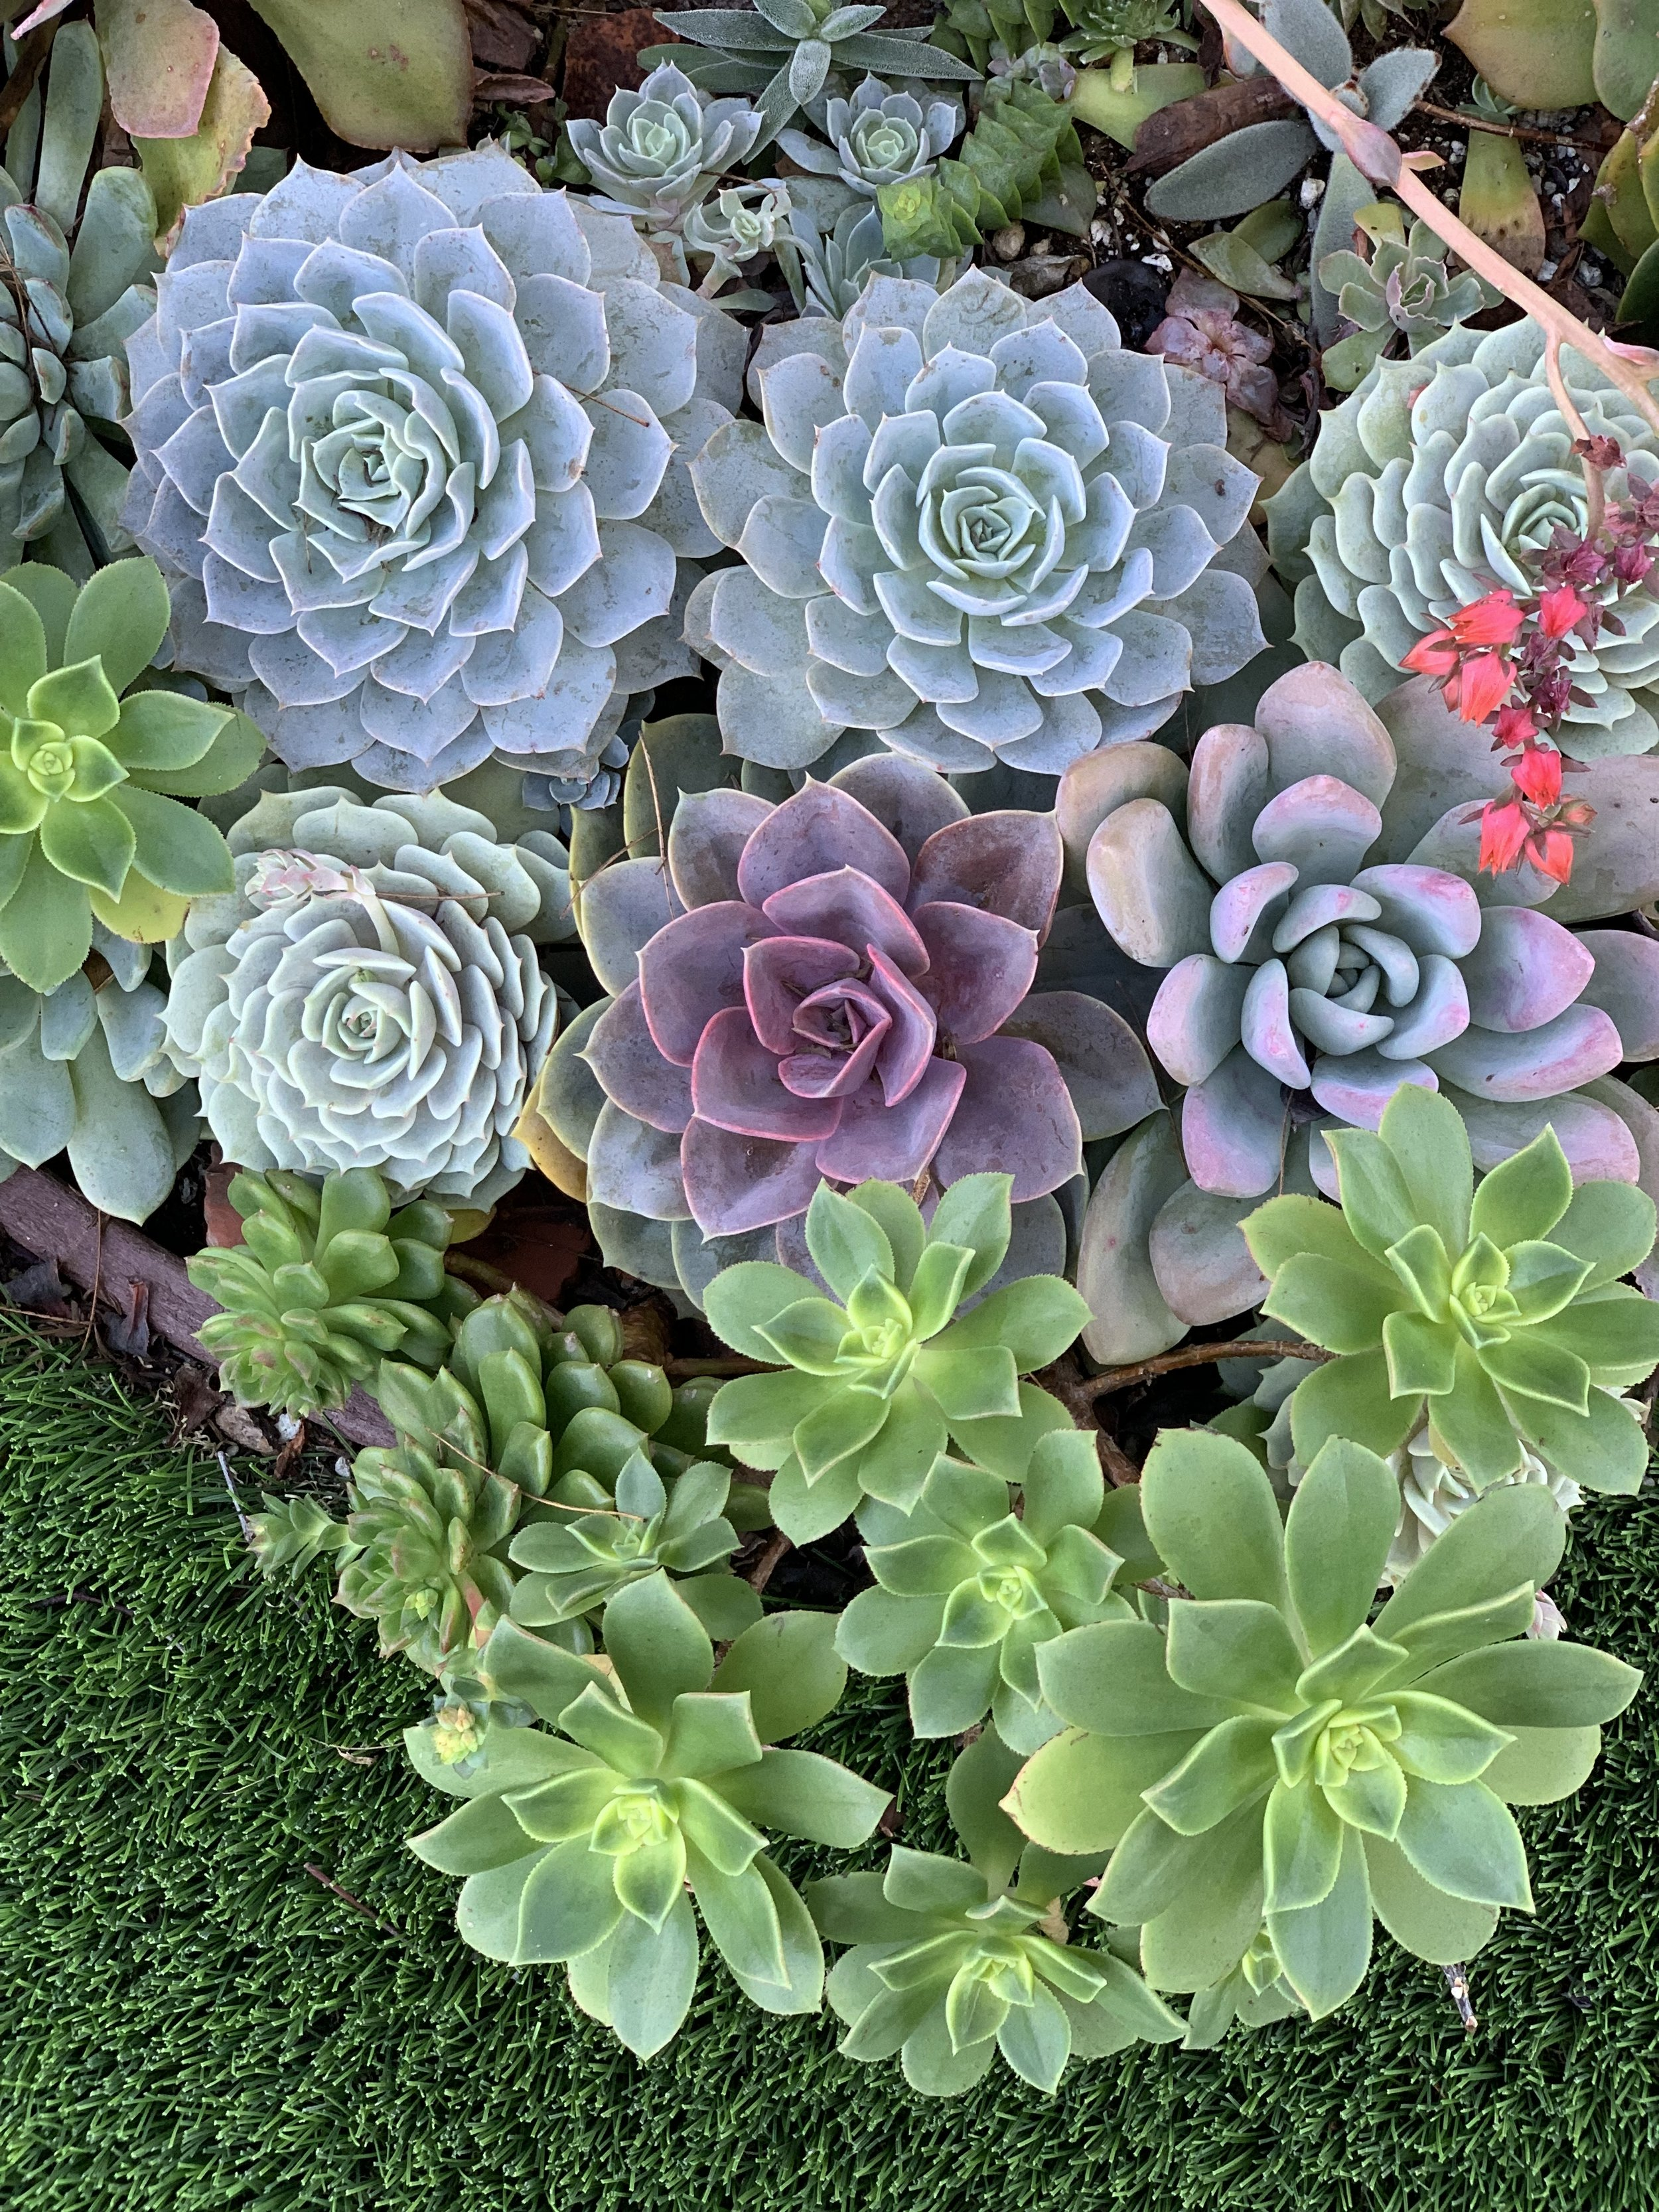 For me, working intimately with plants (and Nature) has gifted me numerous opportunities to heal, grow and always seek more learning. -